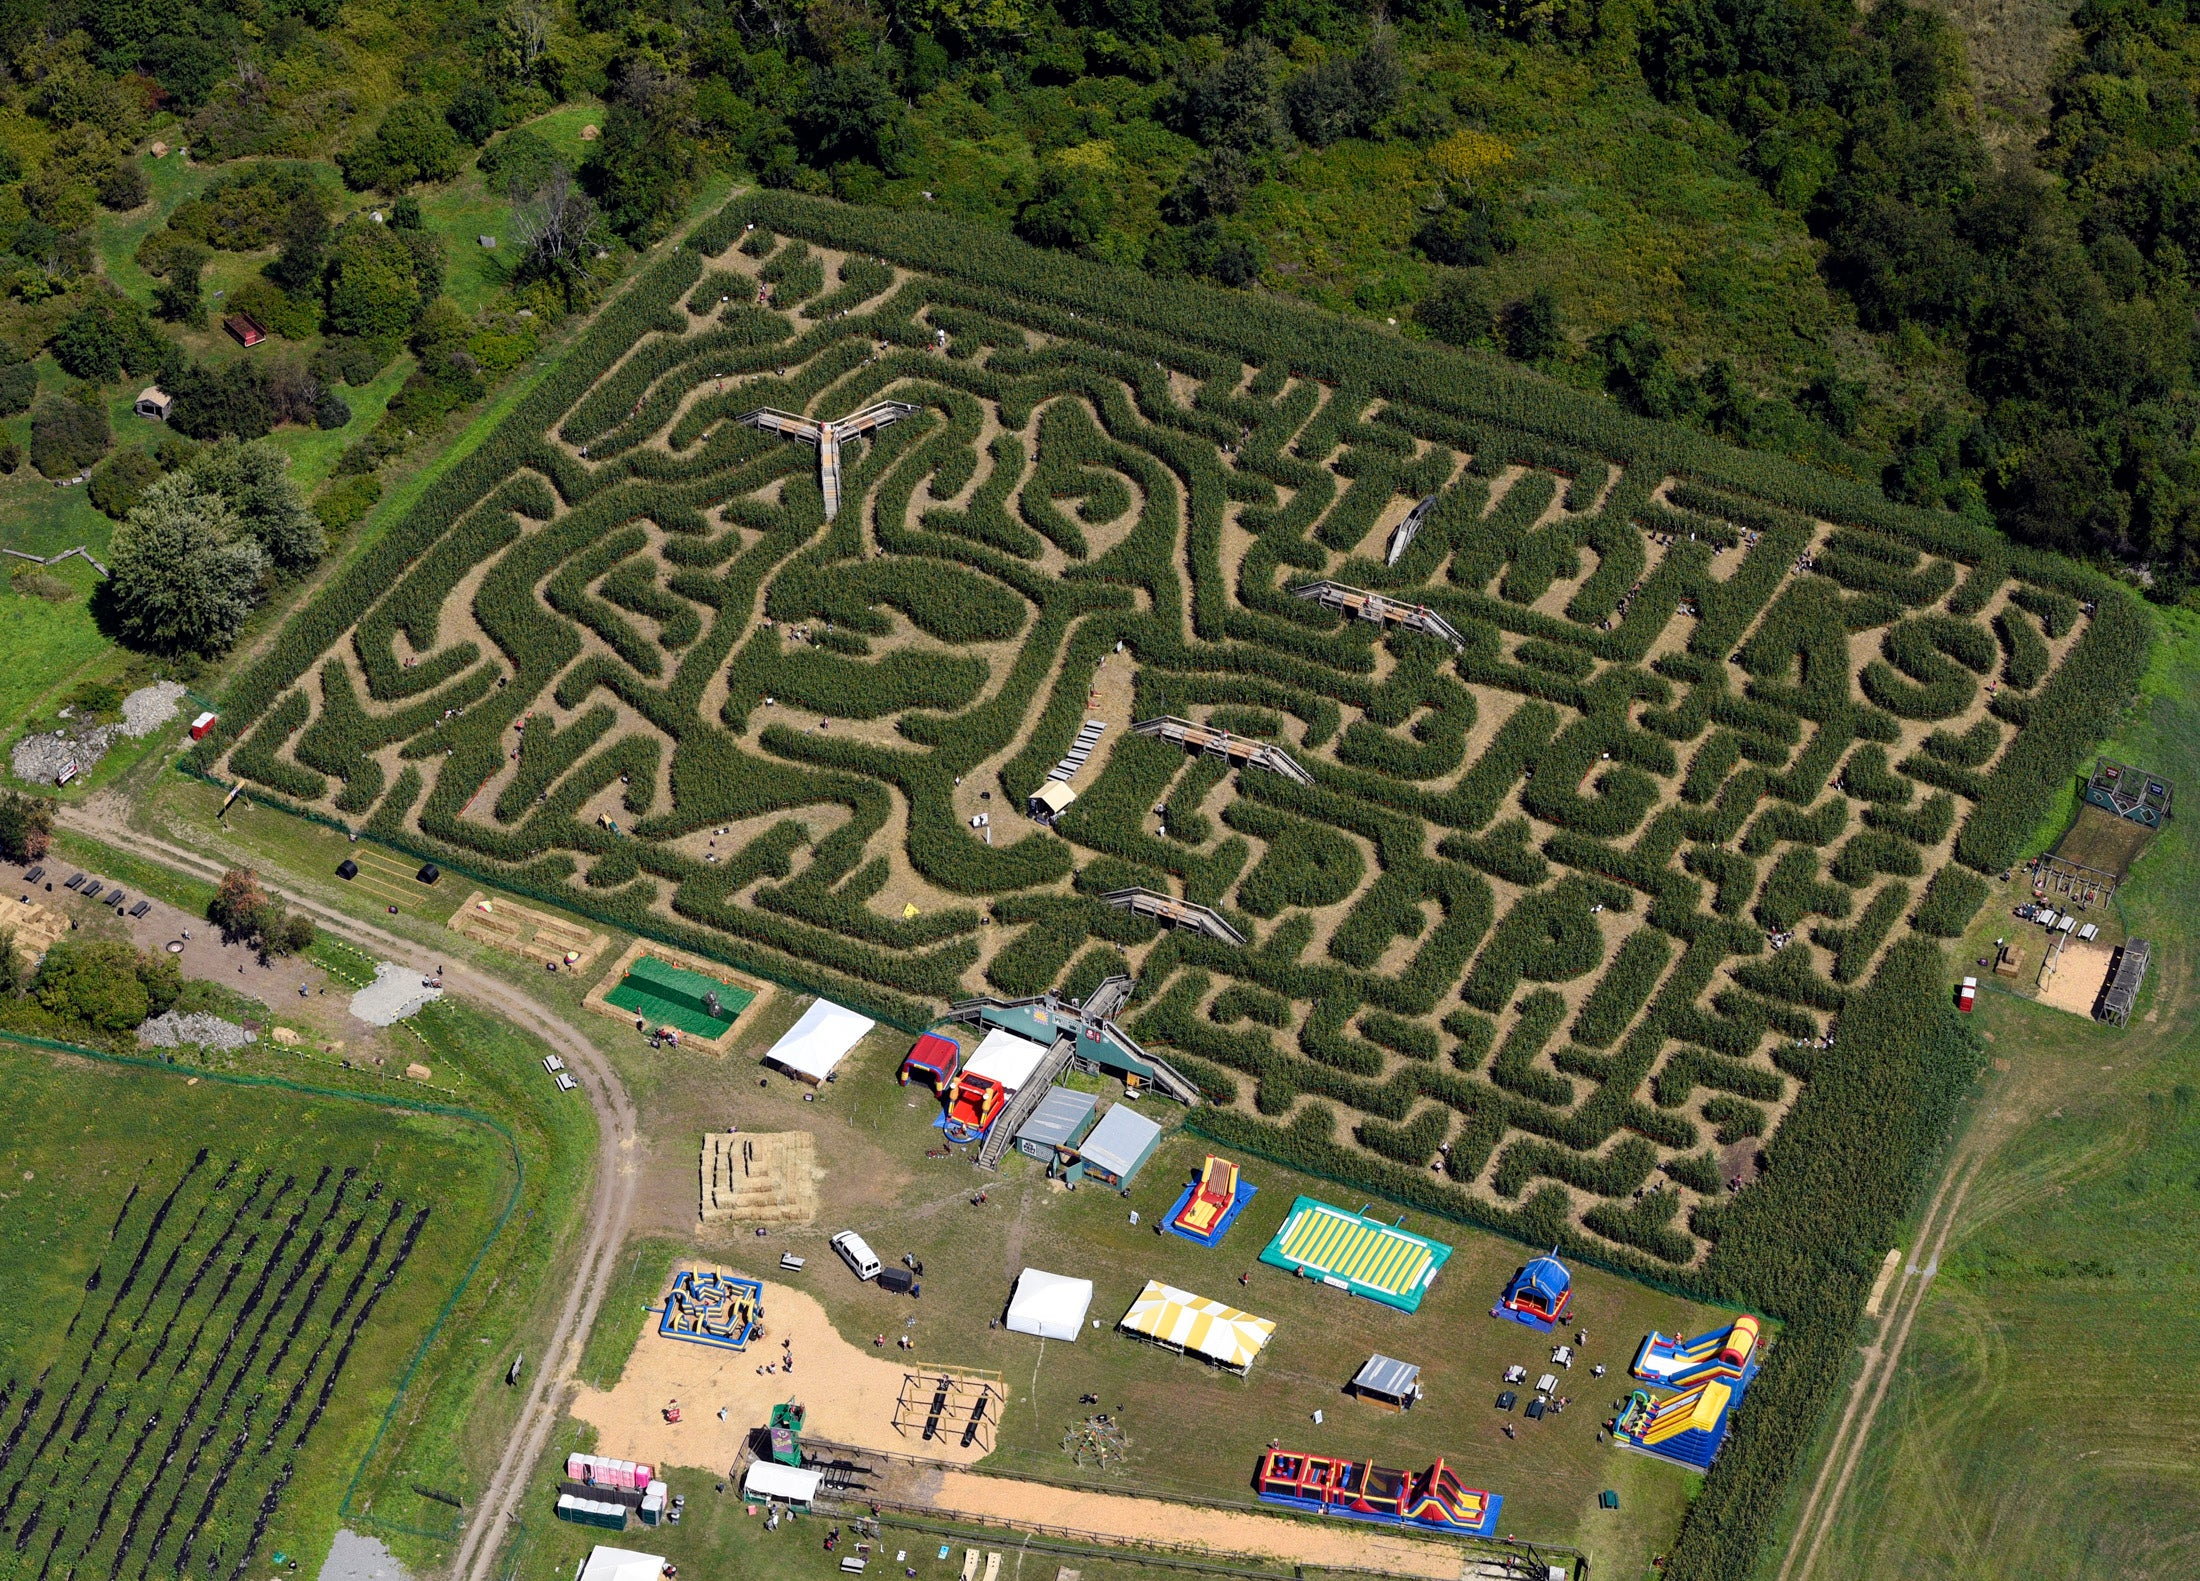 This aerial view shows a corn maze in the likeness of David Ortiz.